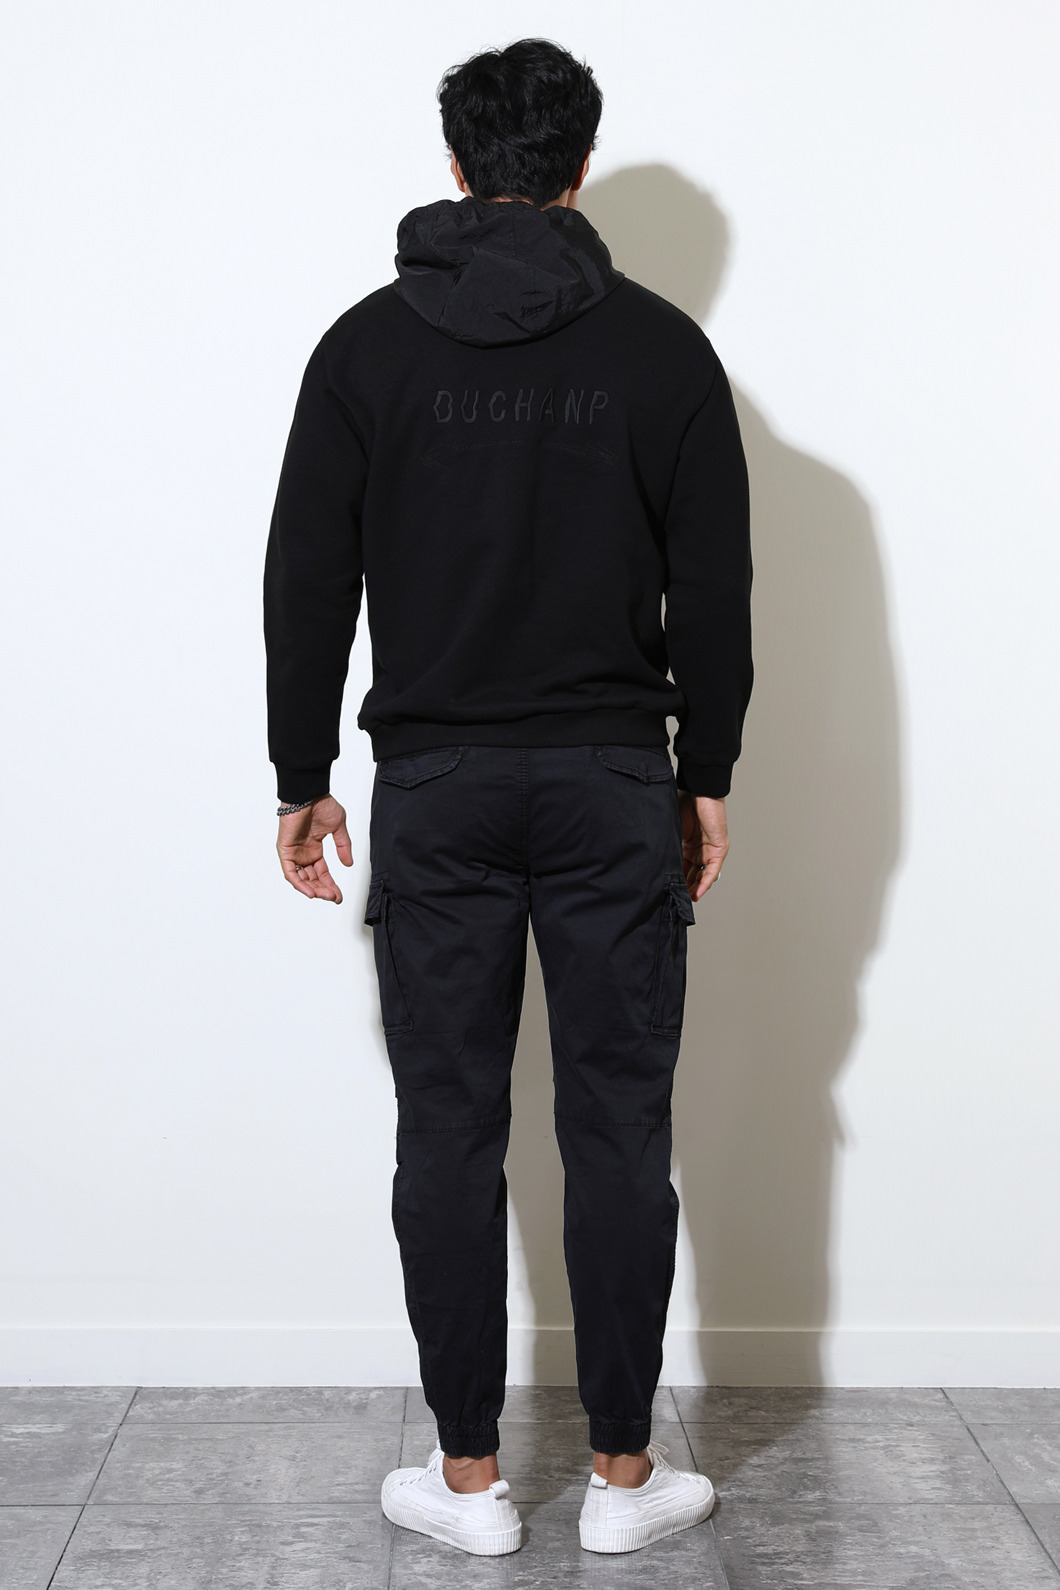 Gallagher Basic Hoody-2color수입한정제품